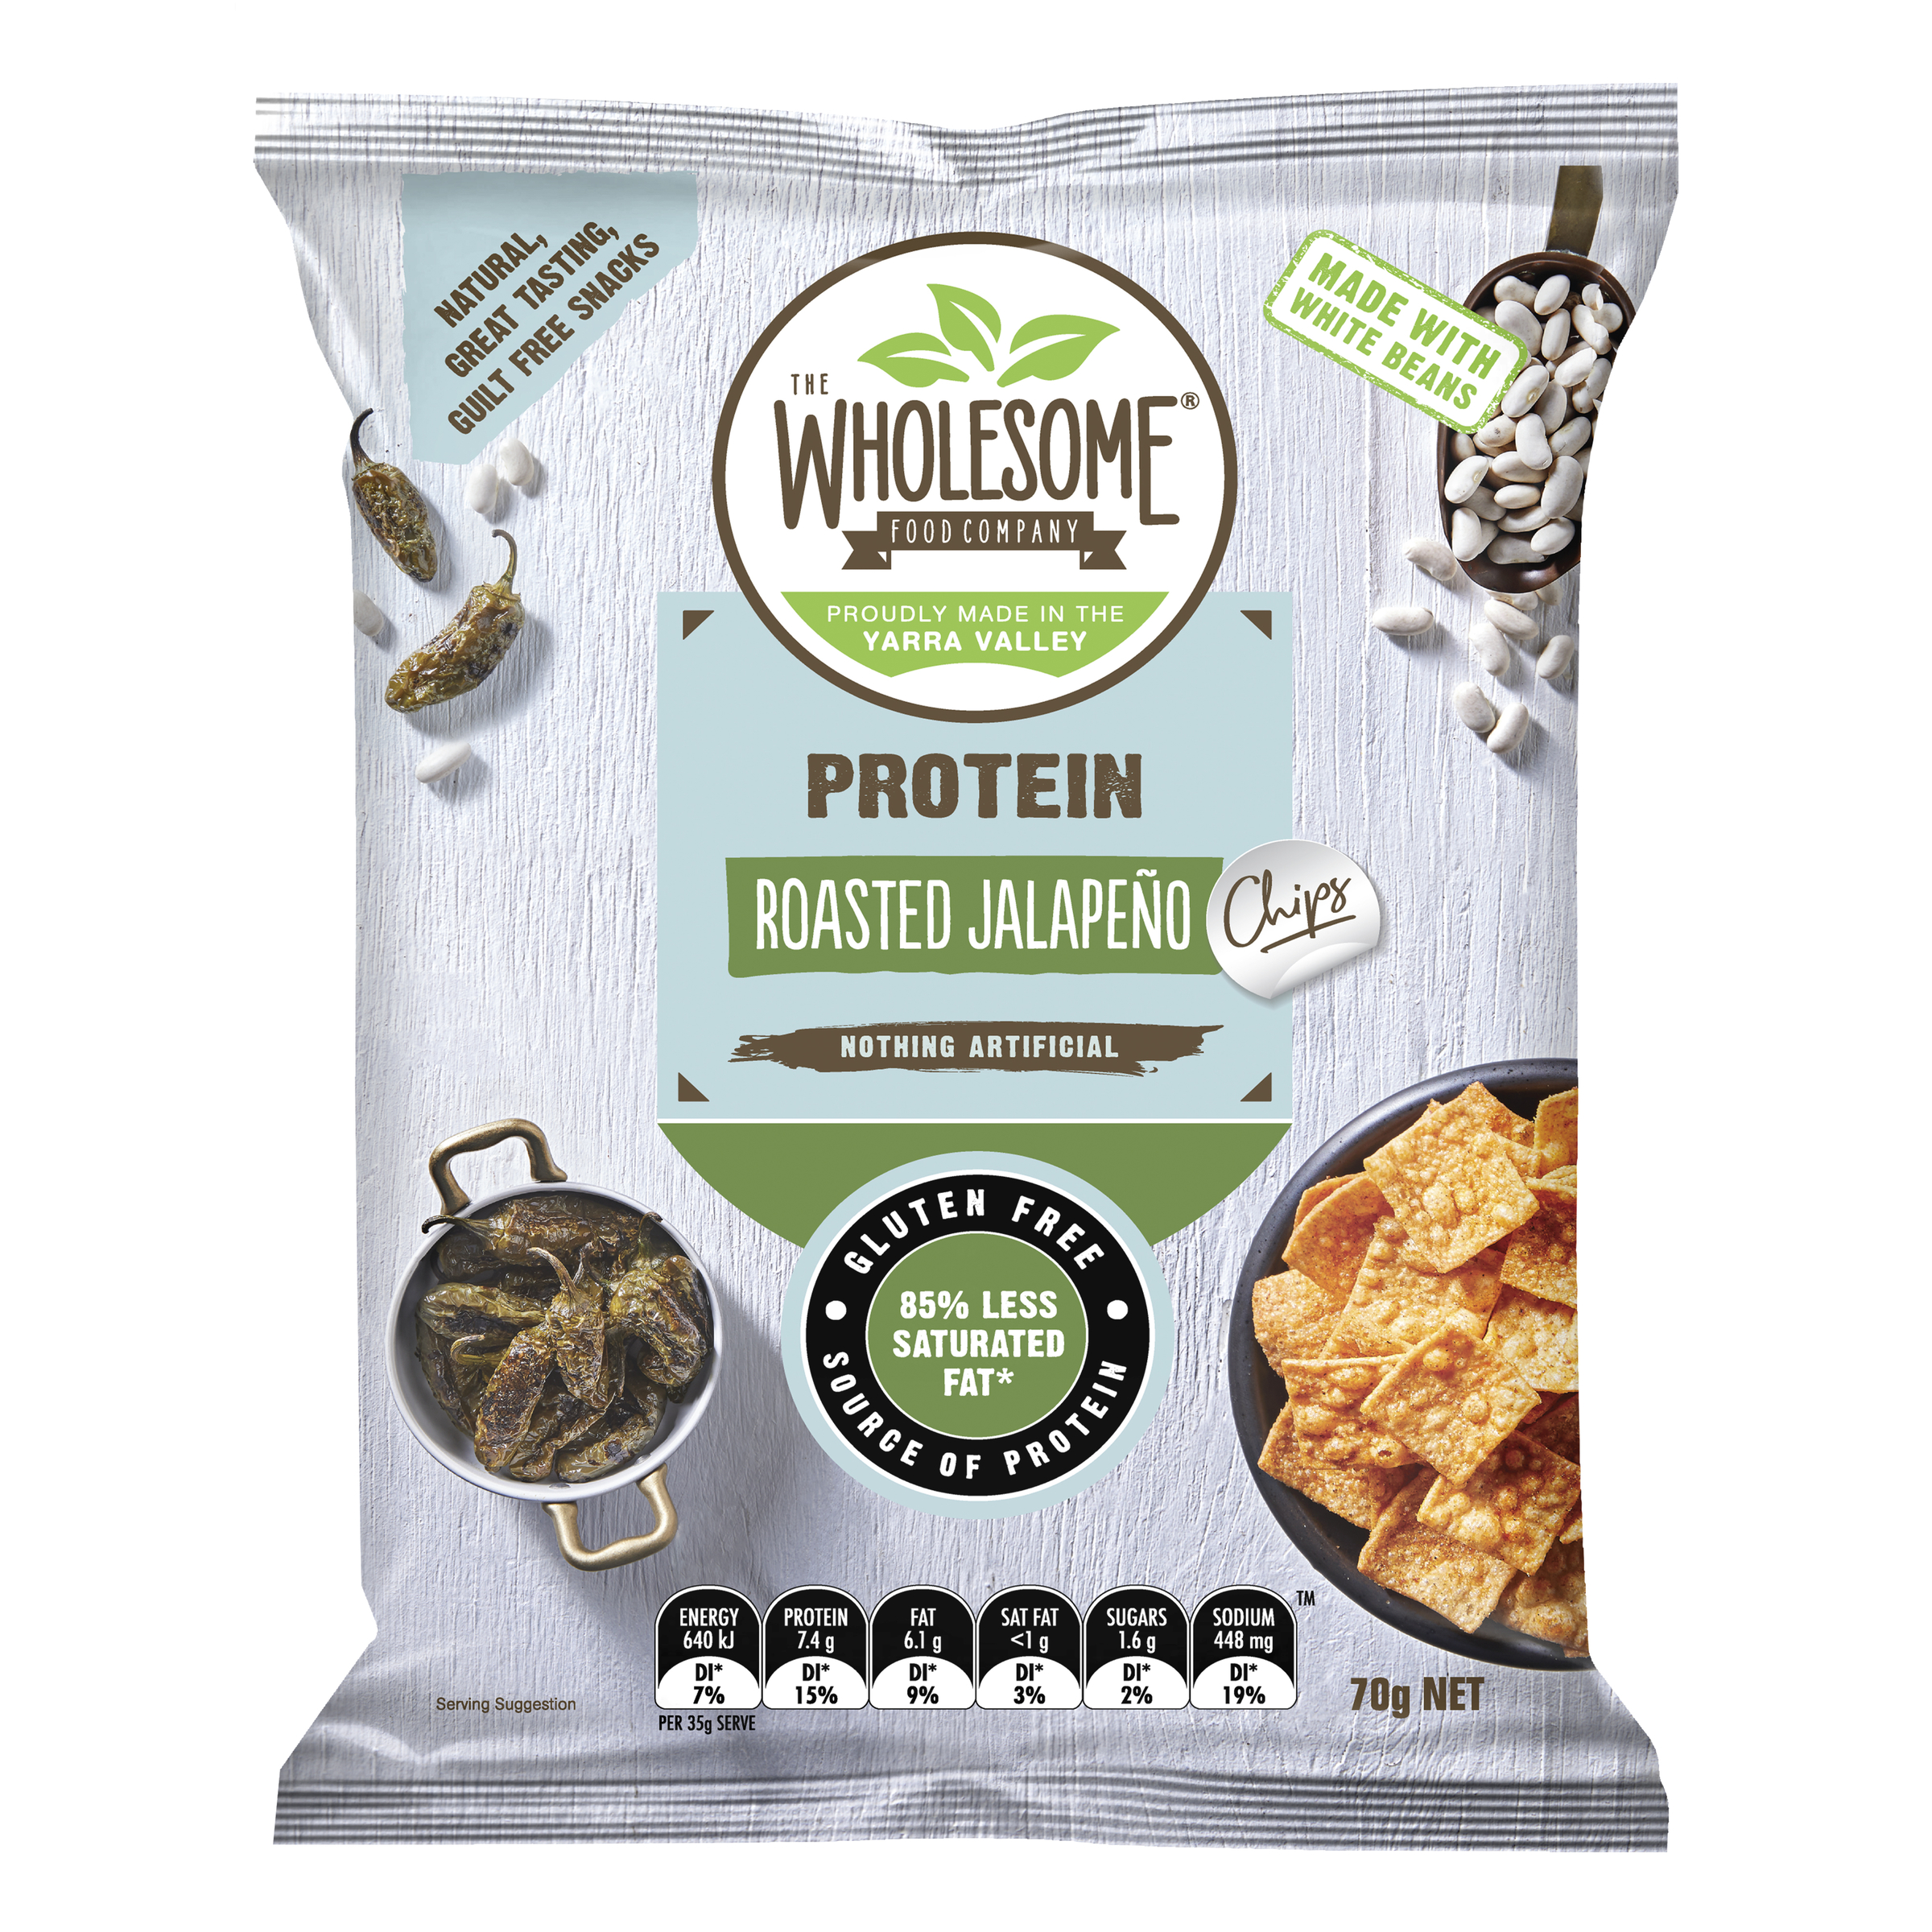 Roasted Jalapeno - Our roasted jalapeno protein chips use a plant based and vegan friendly protein derived from nutritious white beans. So in addition to bring a source of natural protein, they are also highly fibrous to keep you fuller for longer. Our protein chips are seasoned with a fire roasted jalapeno seasoning to deliver an irresistibly moreish, crunchy treat to satisfy your savoury cravings.